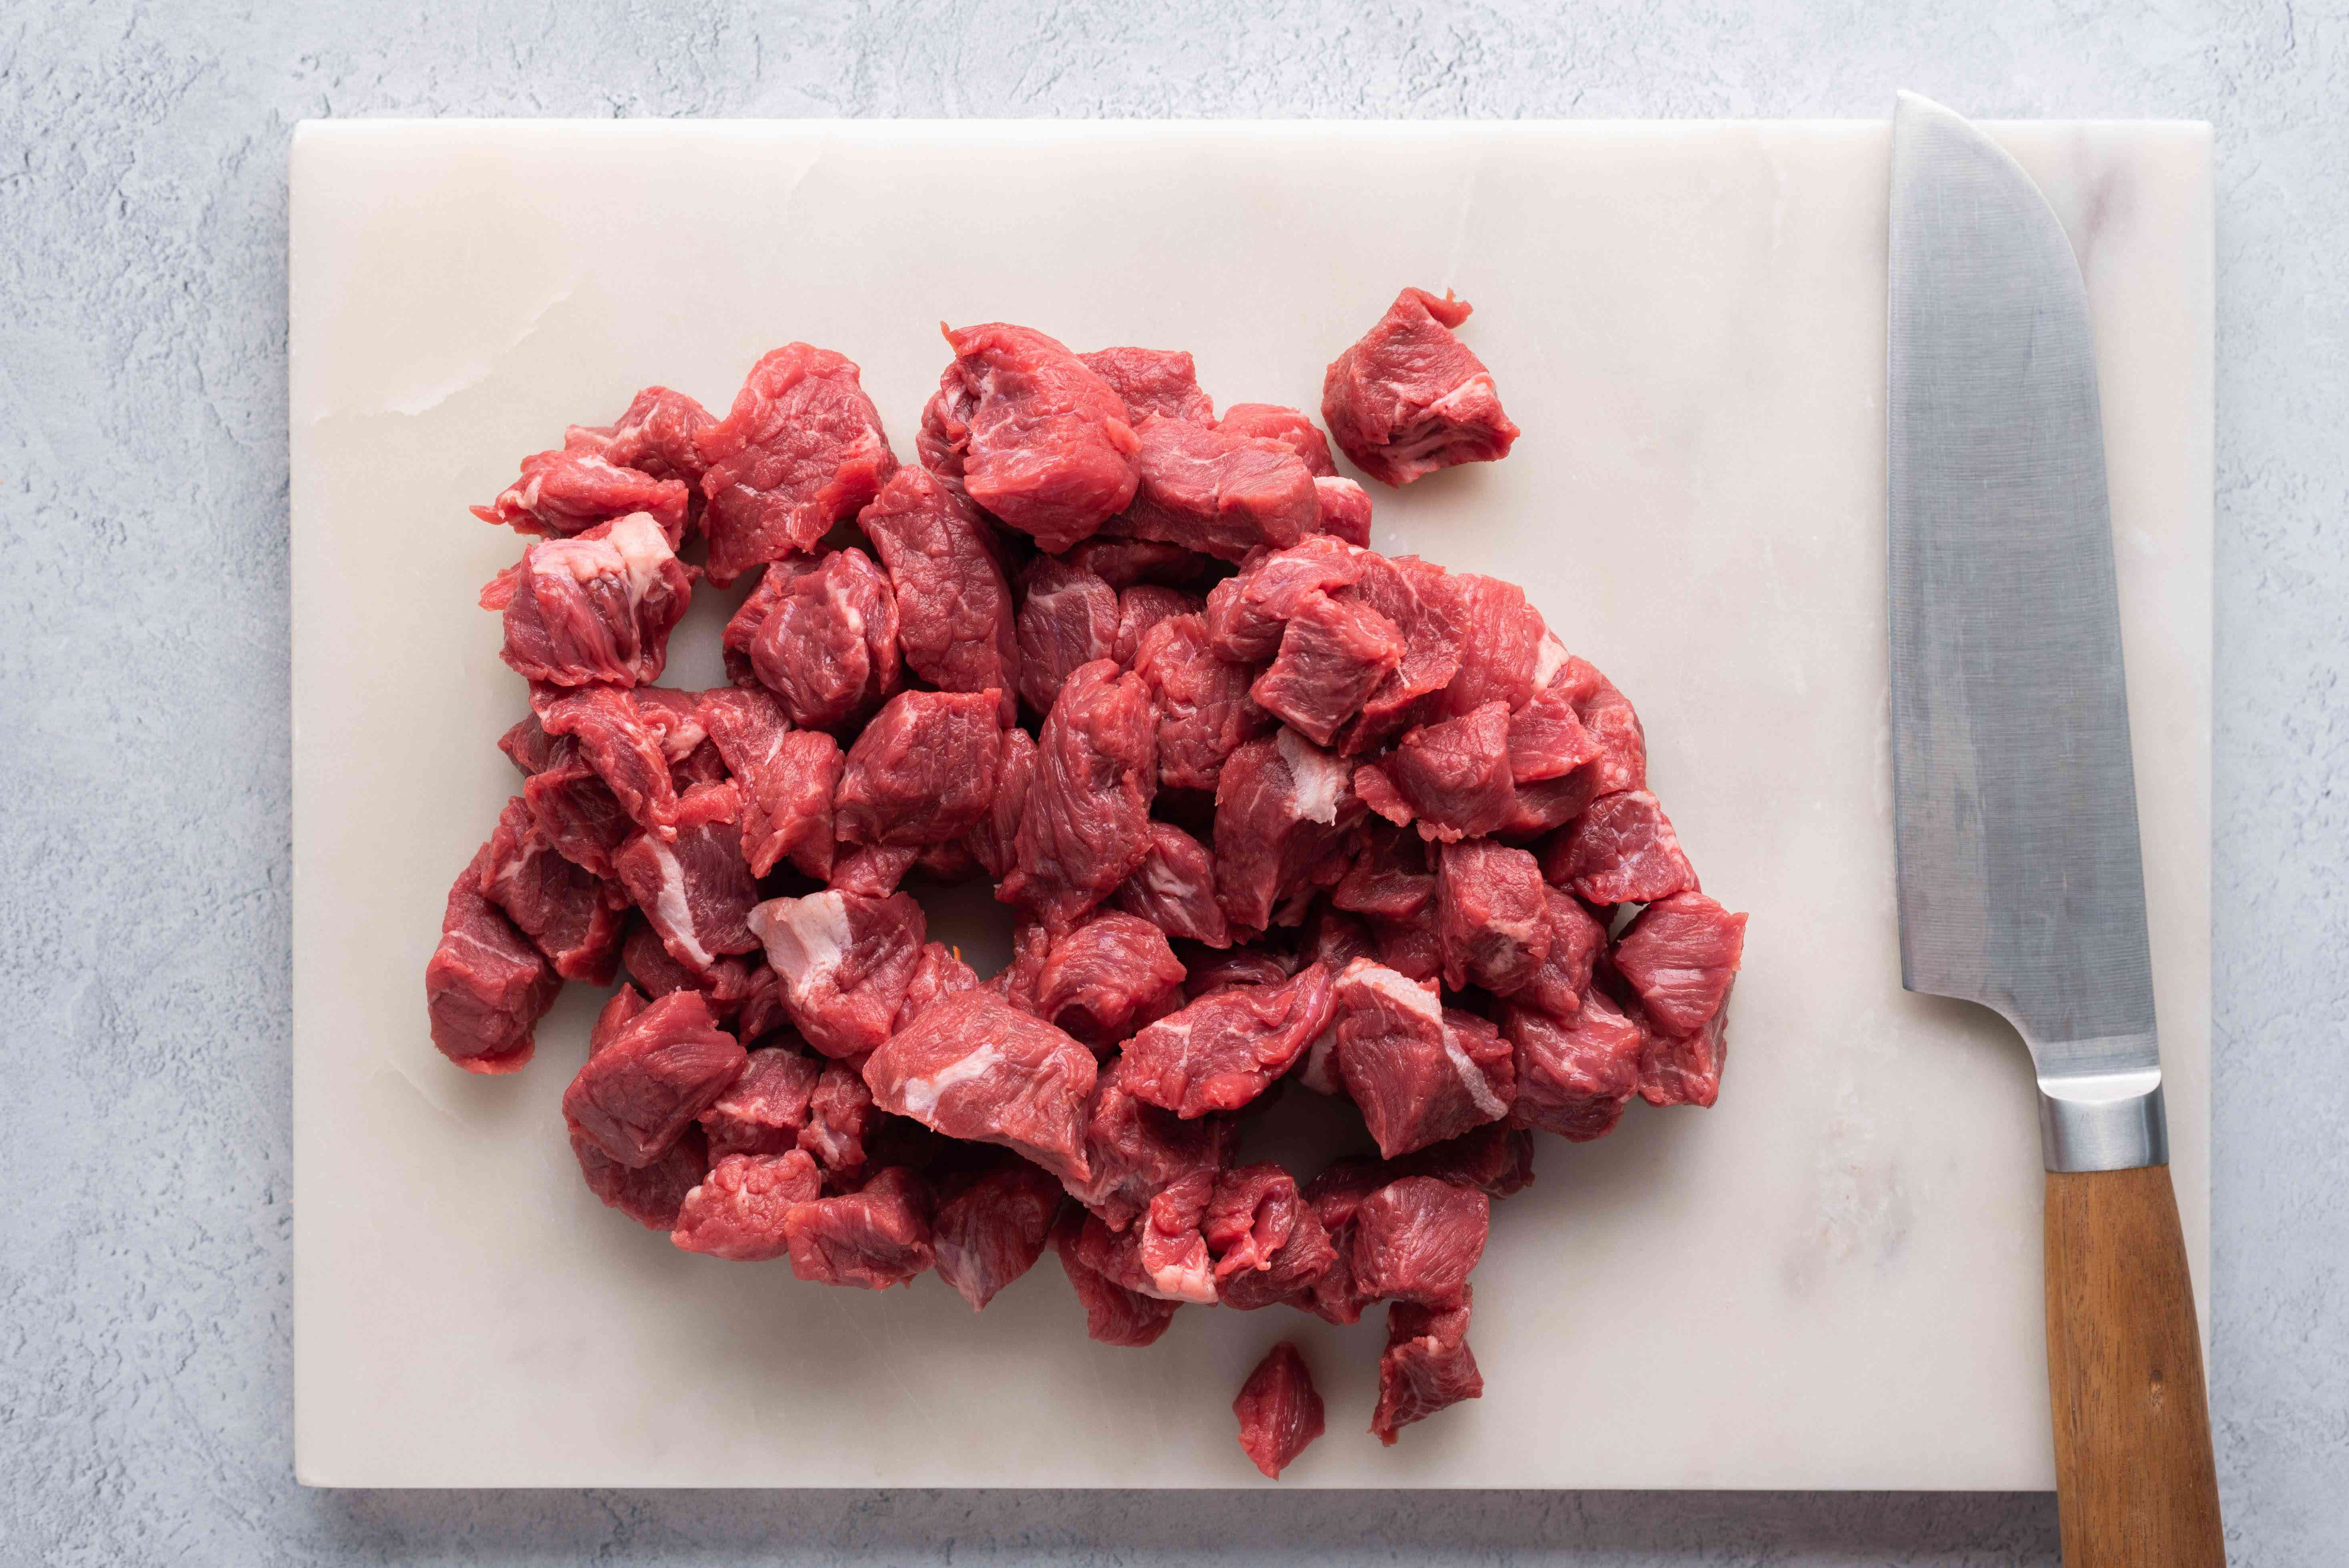 beef cut into pieces